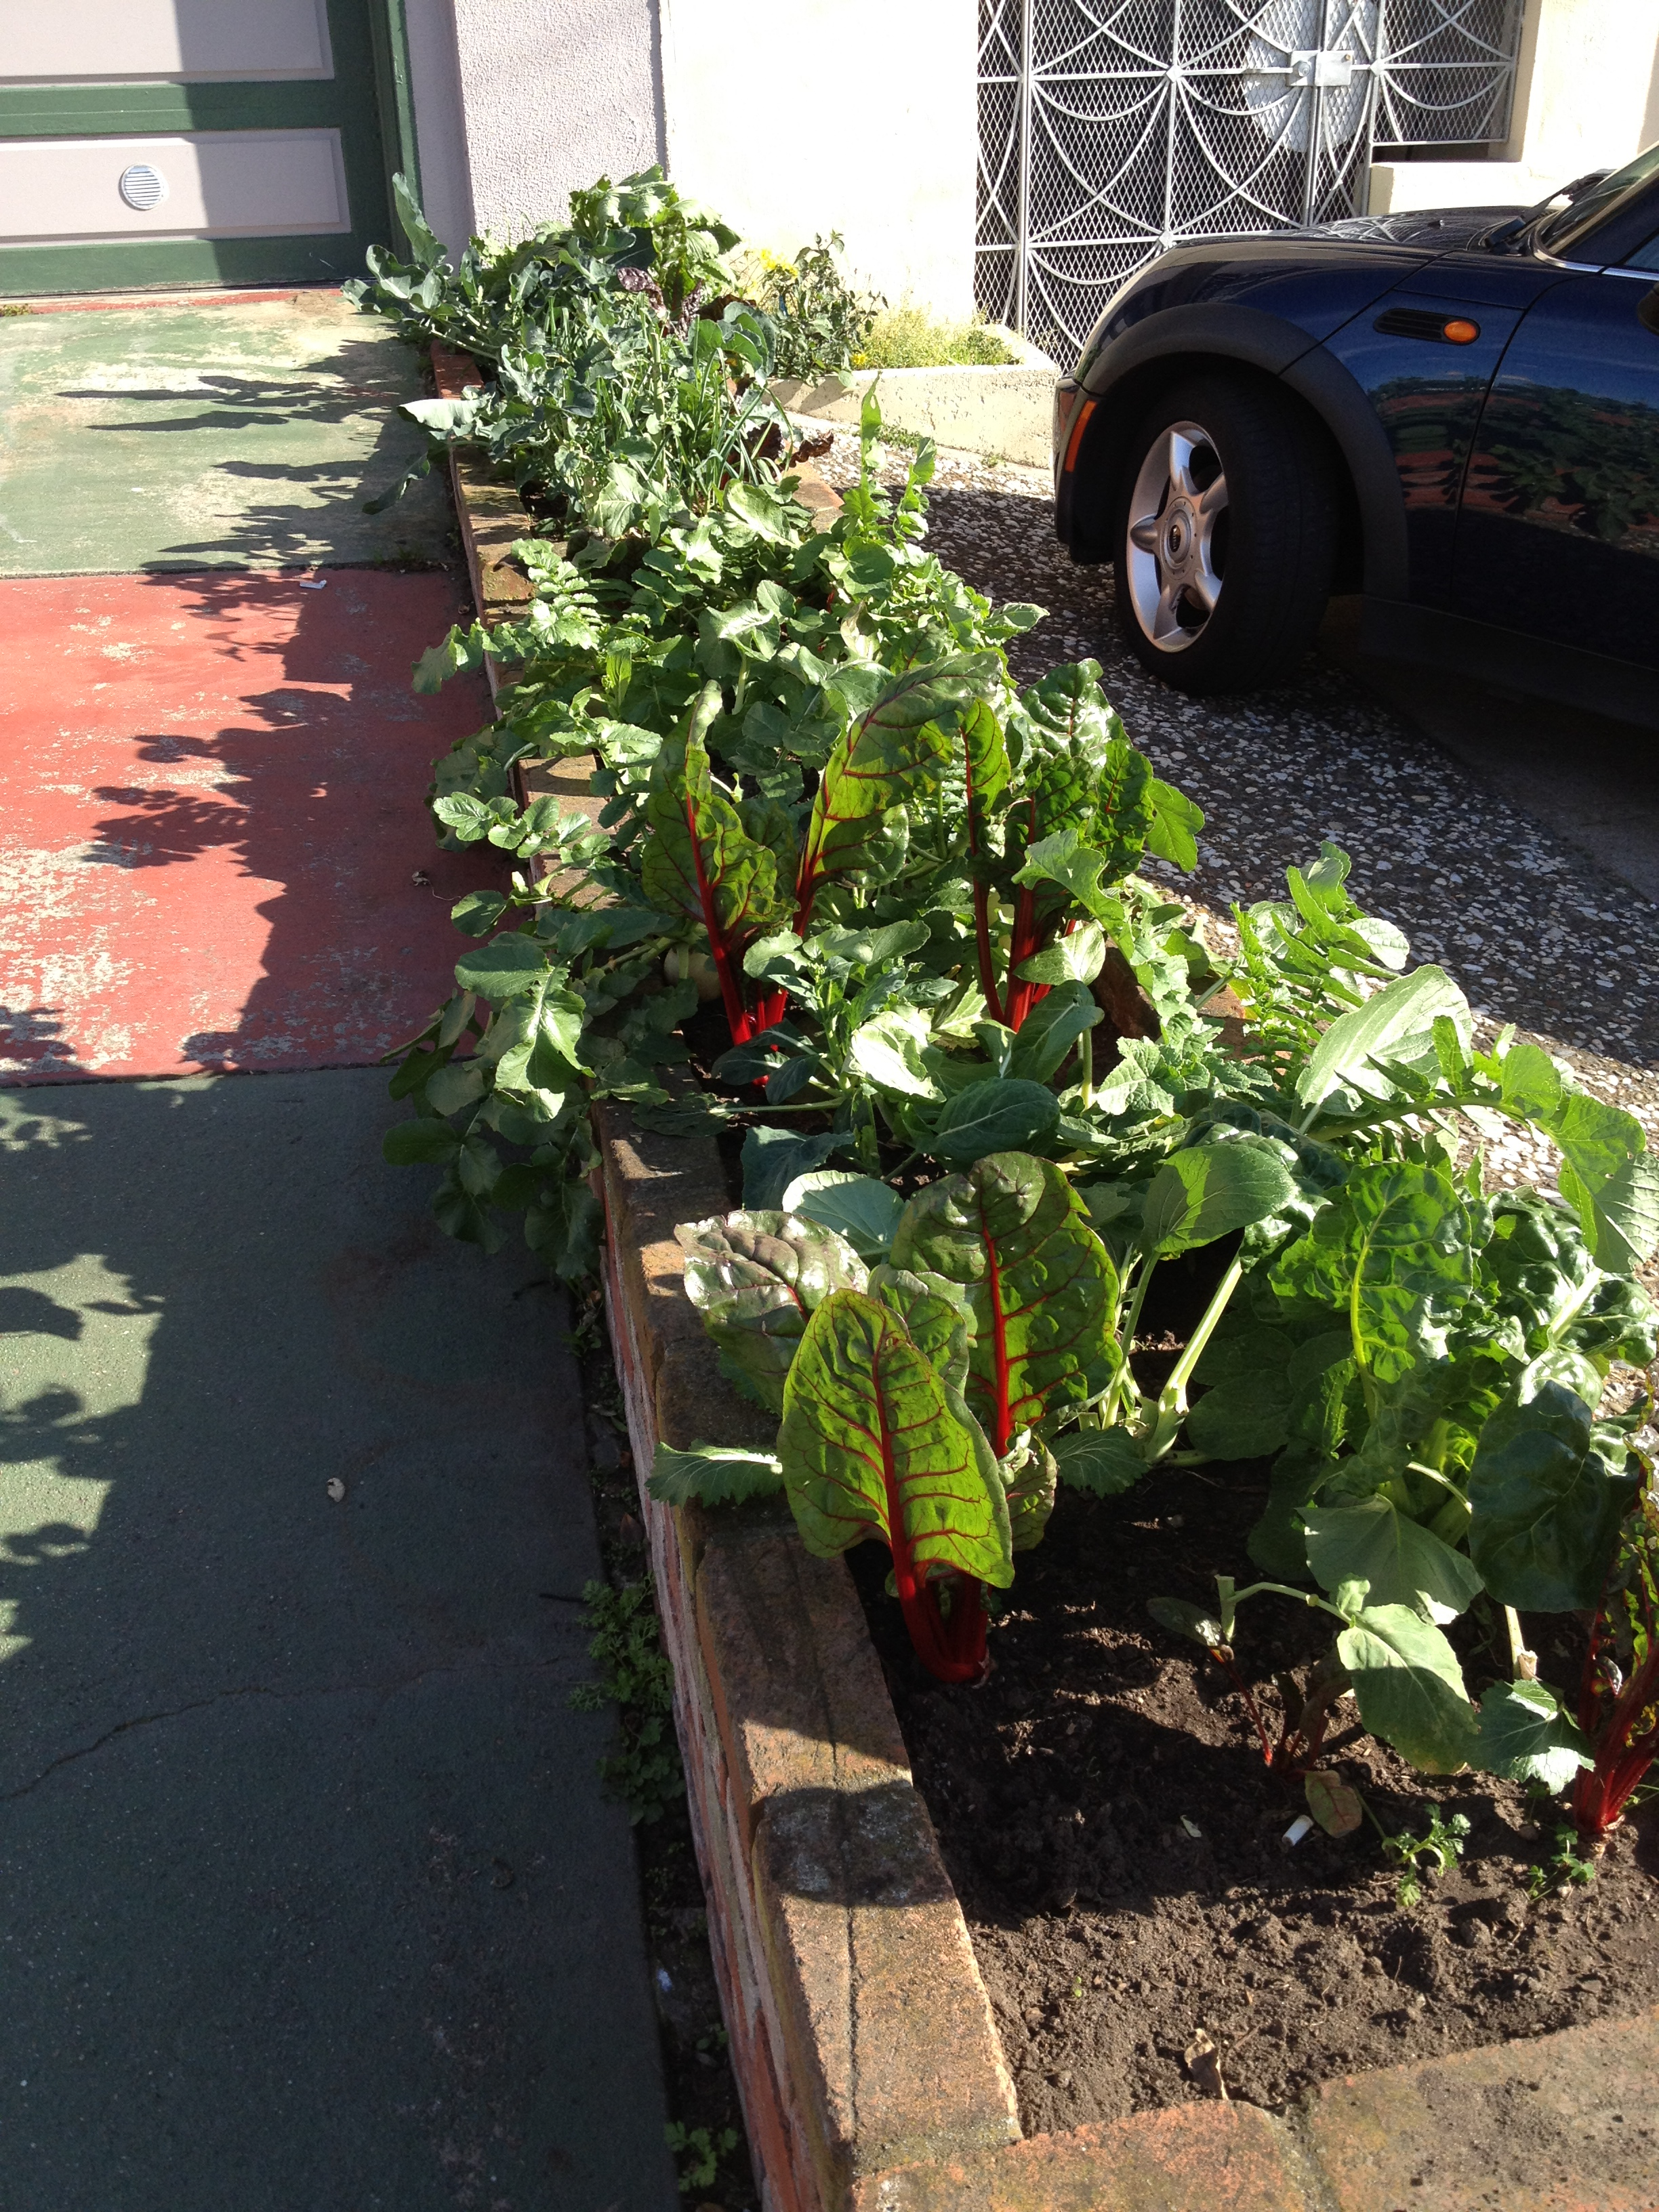 Category: Uncategorized Tagged: Edible Gardens, Recycled Materials